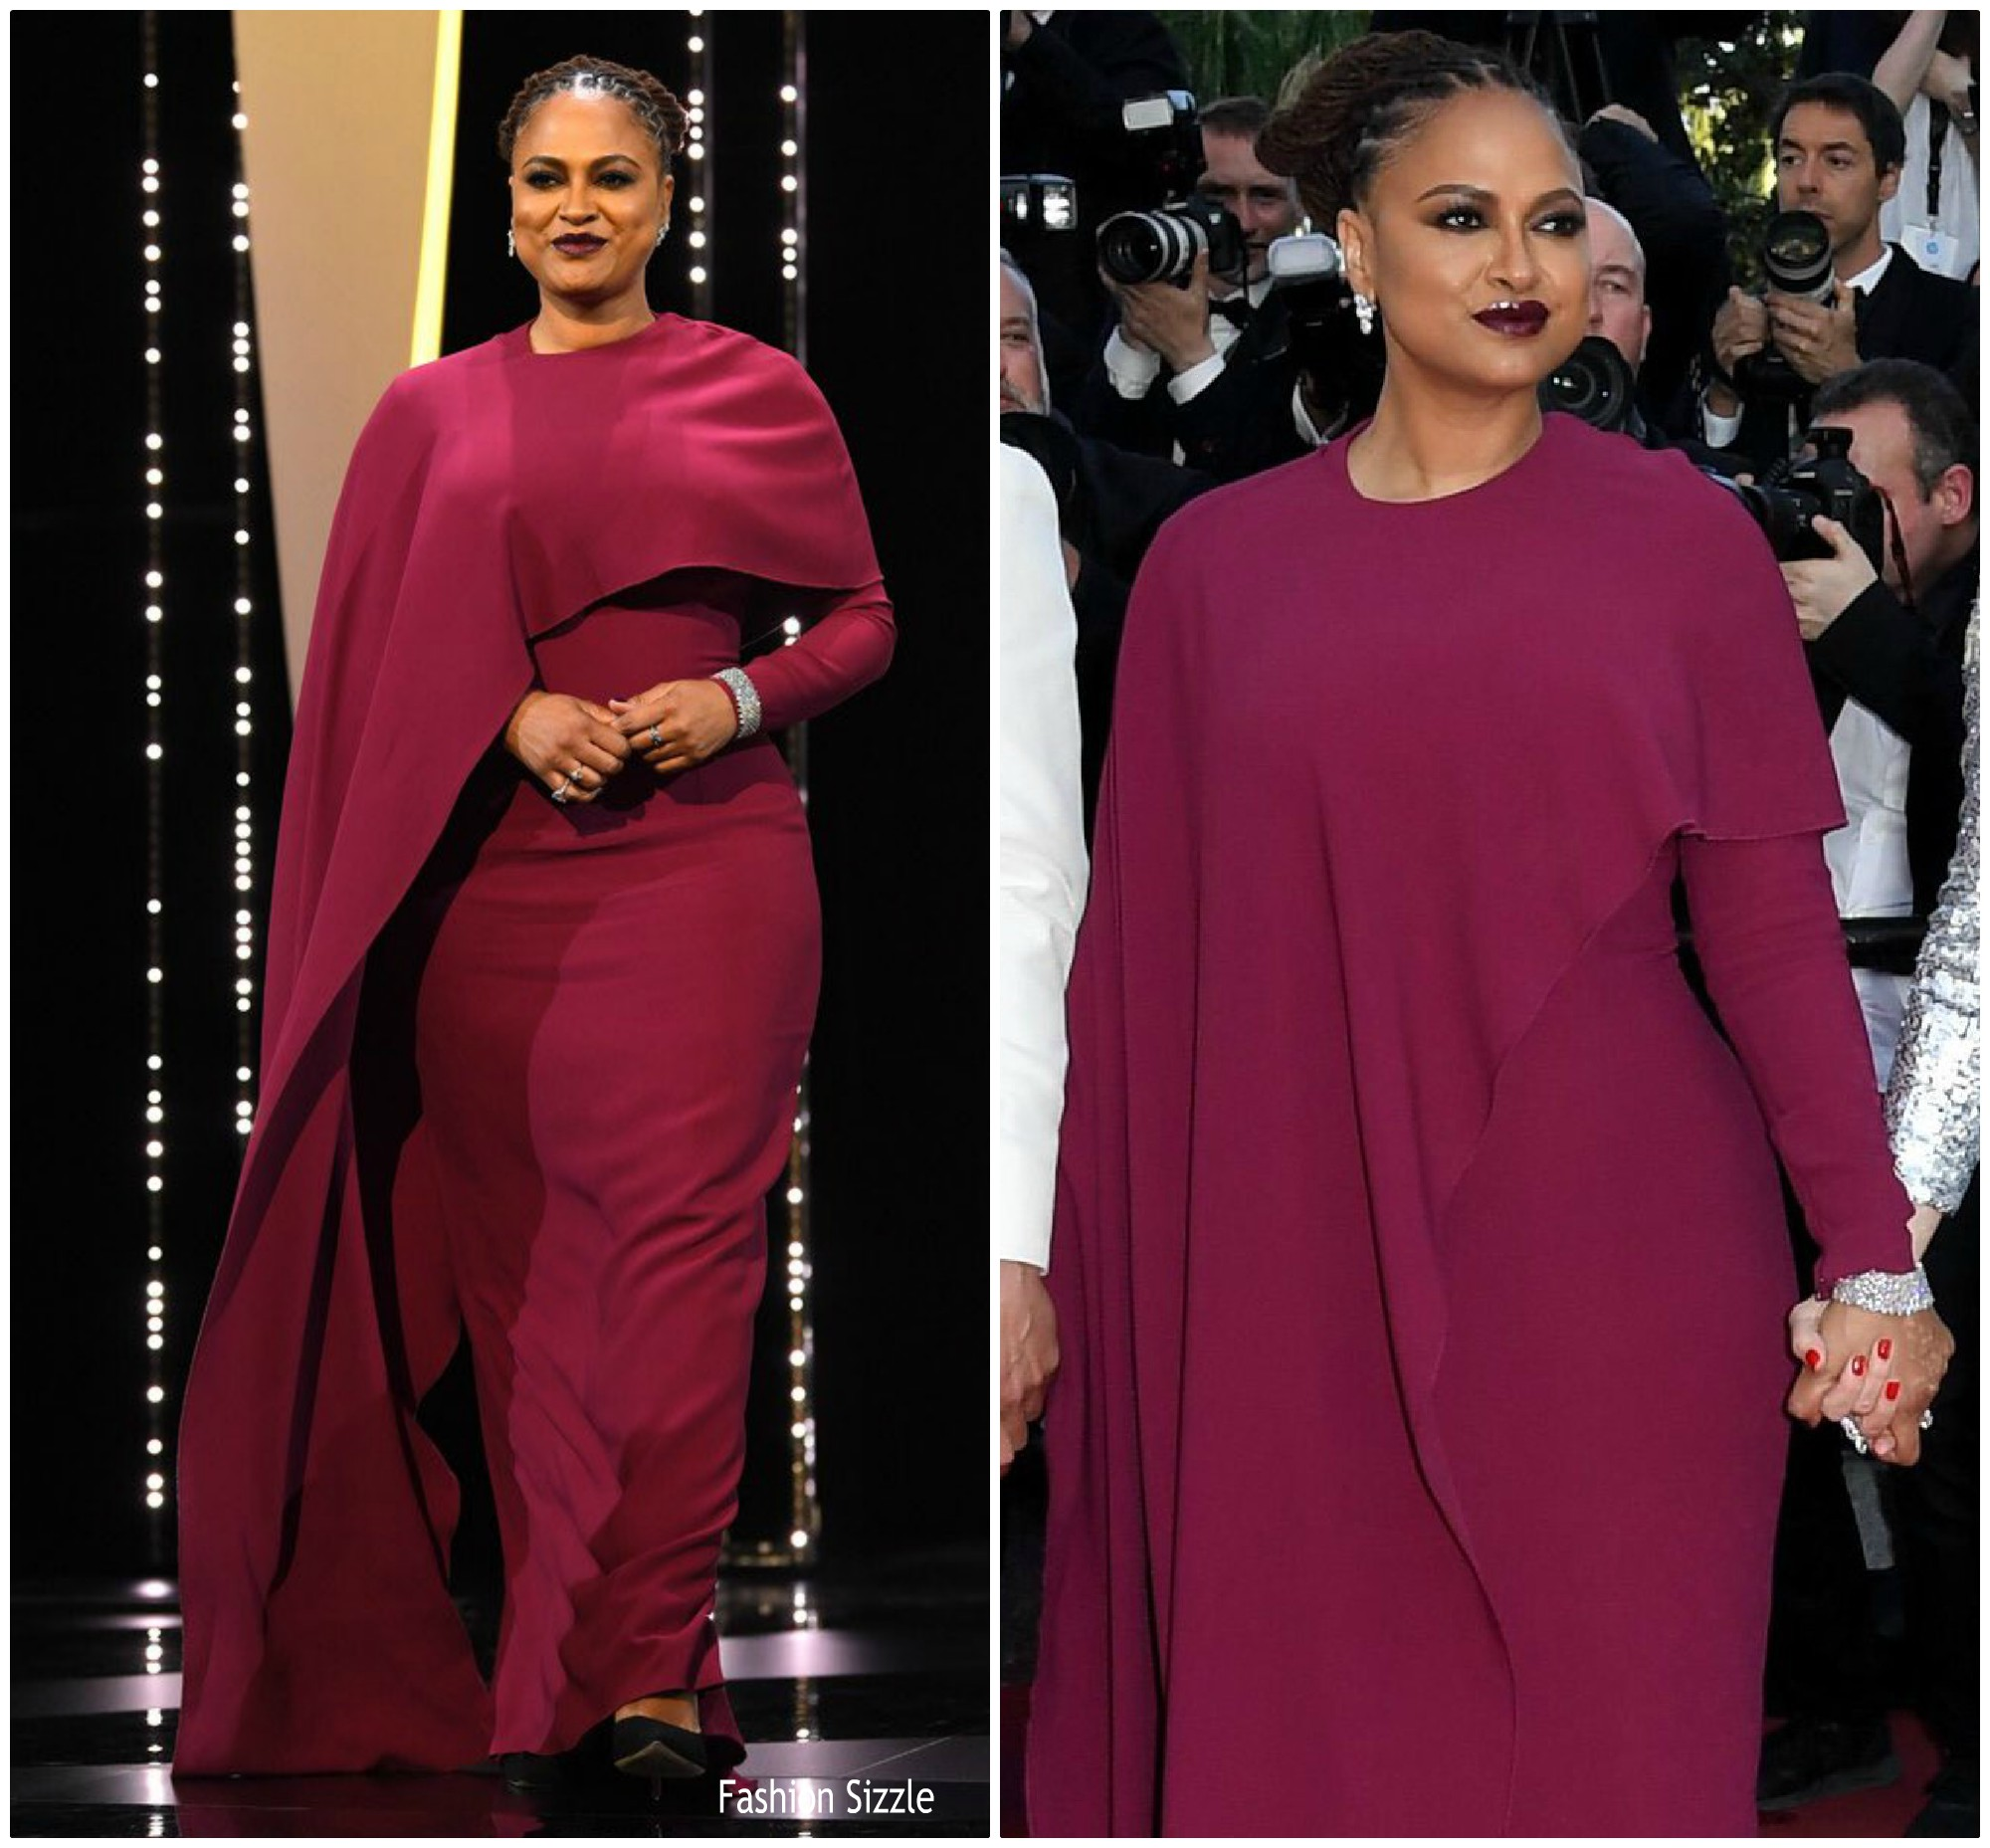 ava-duvernay-in-stella-mccartney-the-man-who-killed-don-quixote-cannes-film-festival-premiere